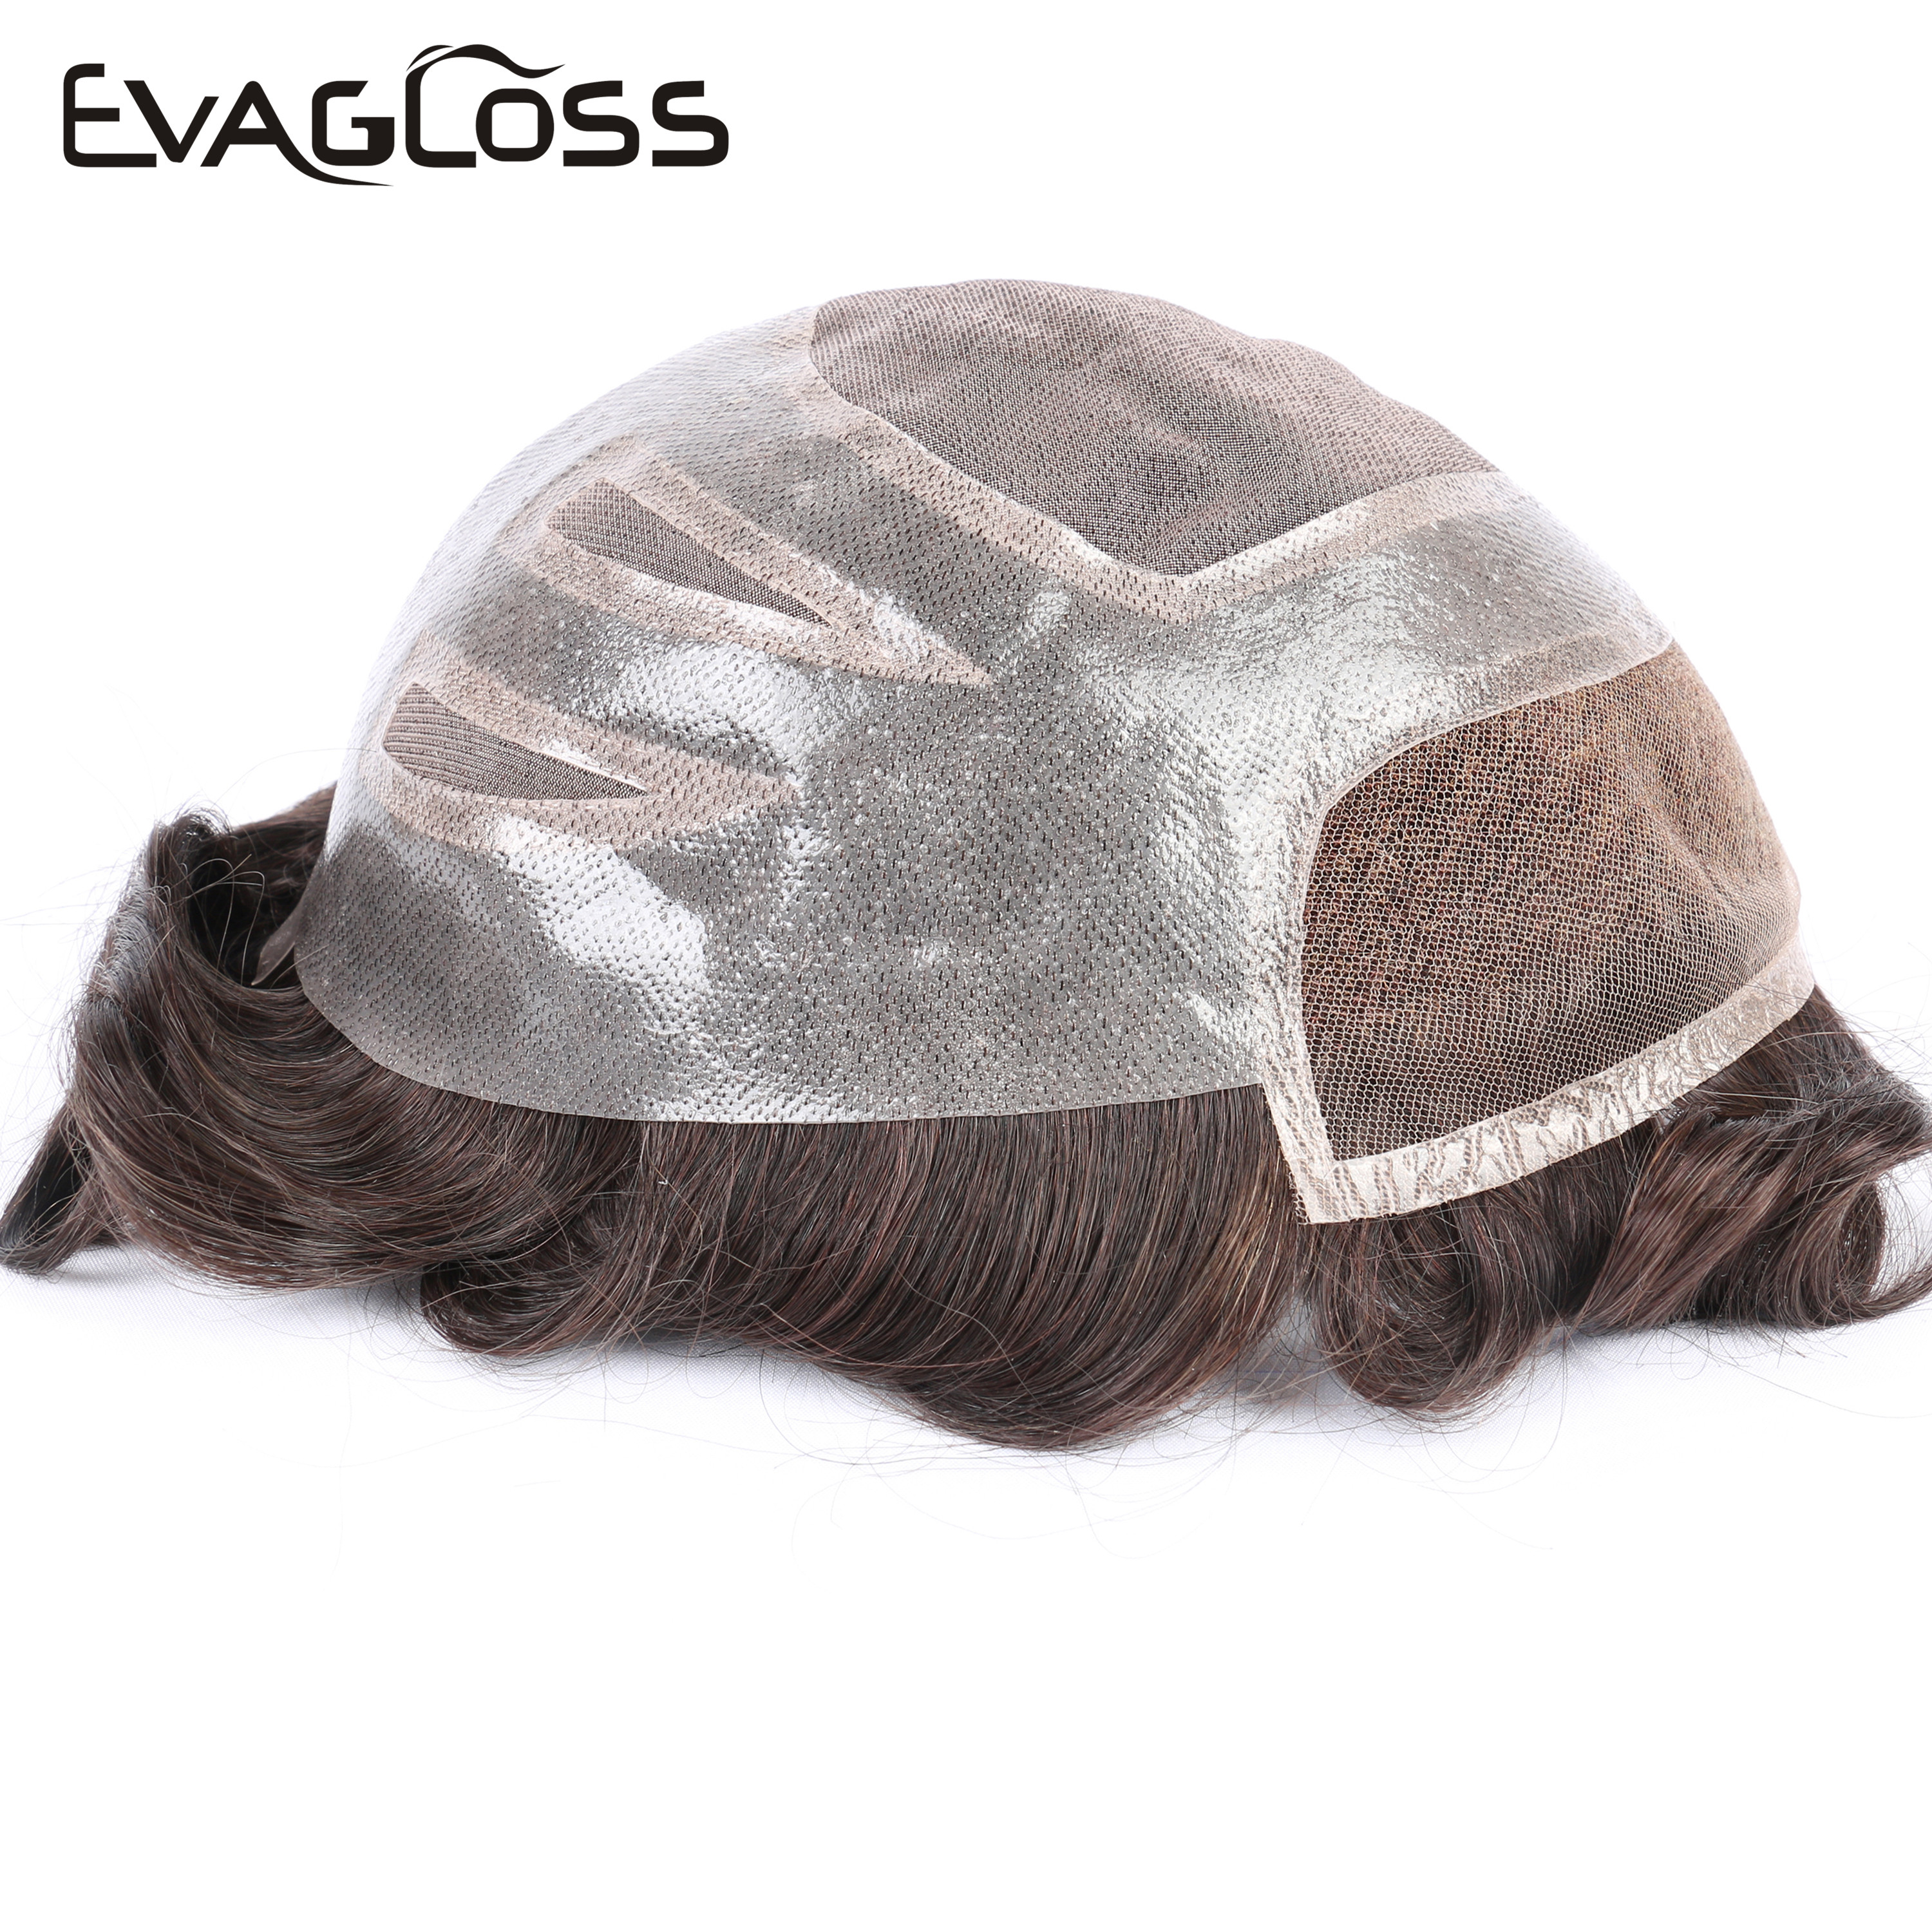 EVAGLOSS VERSALITE Style Indian Human Hair Swiss Lace Mono Wig Hair Toupee